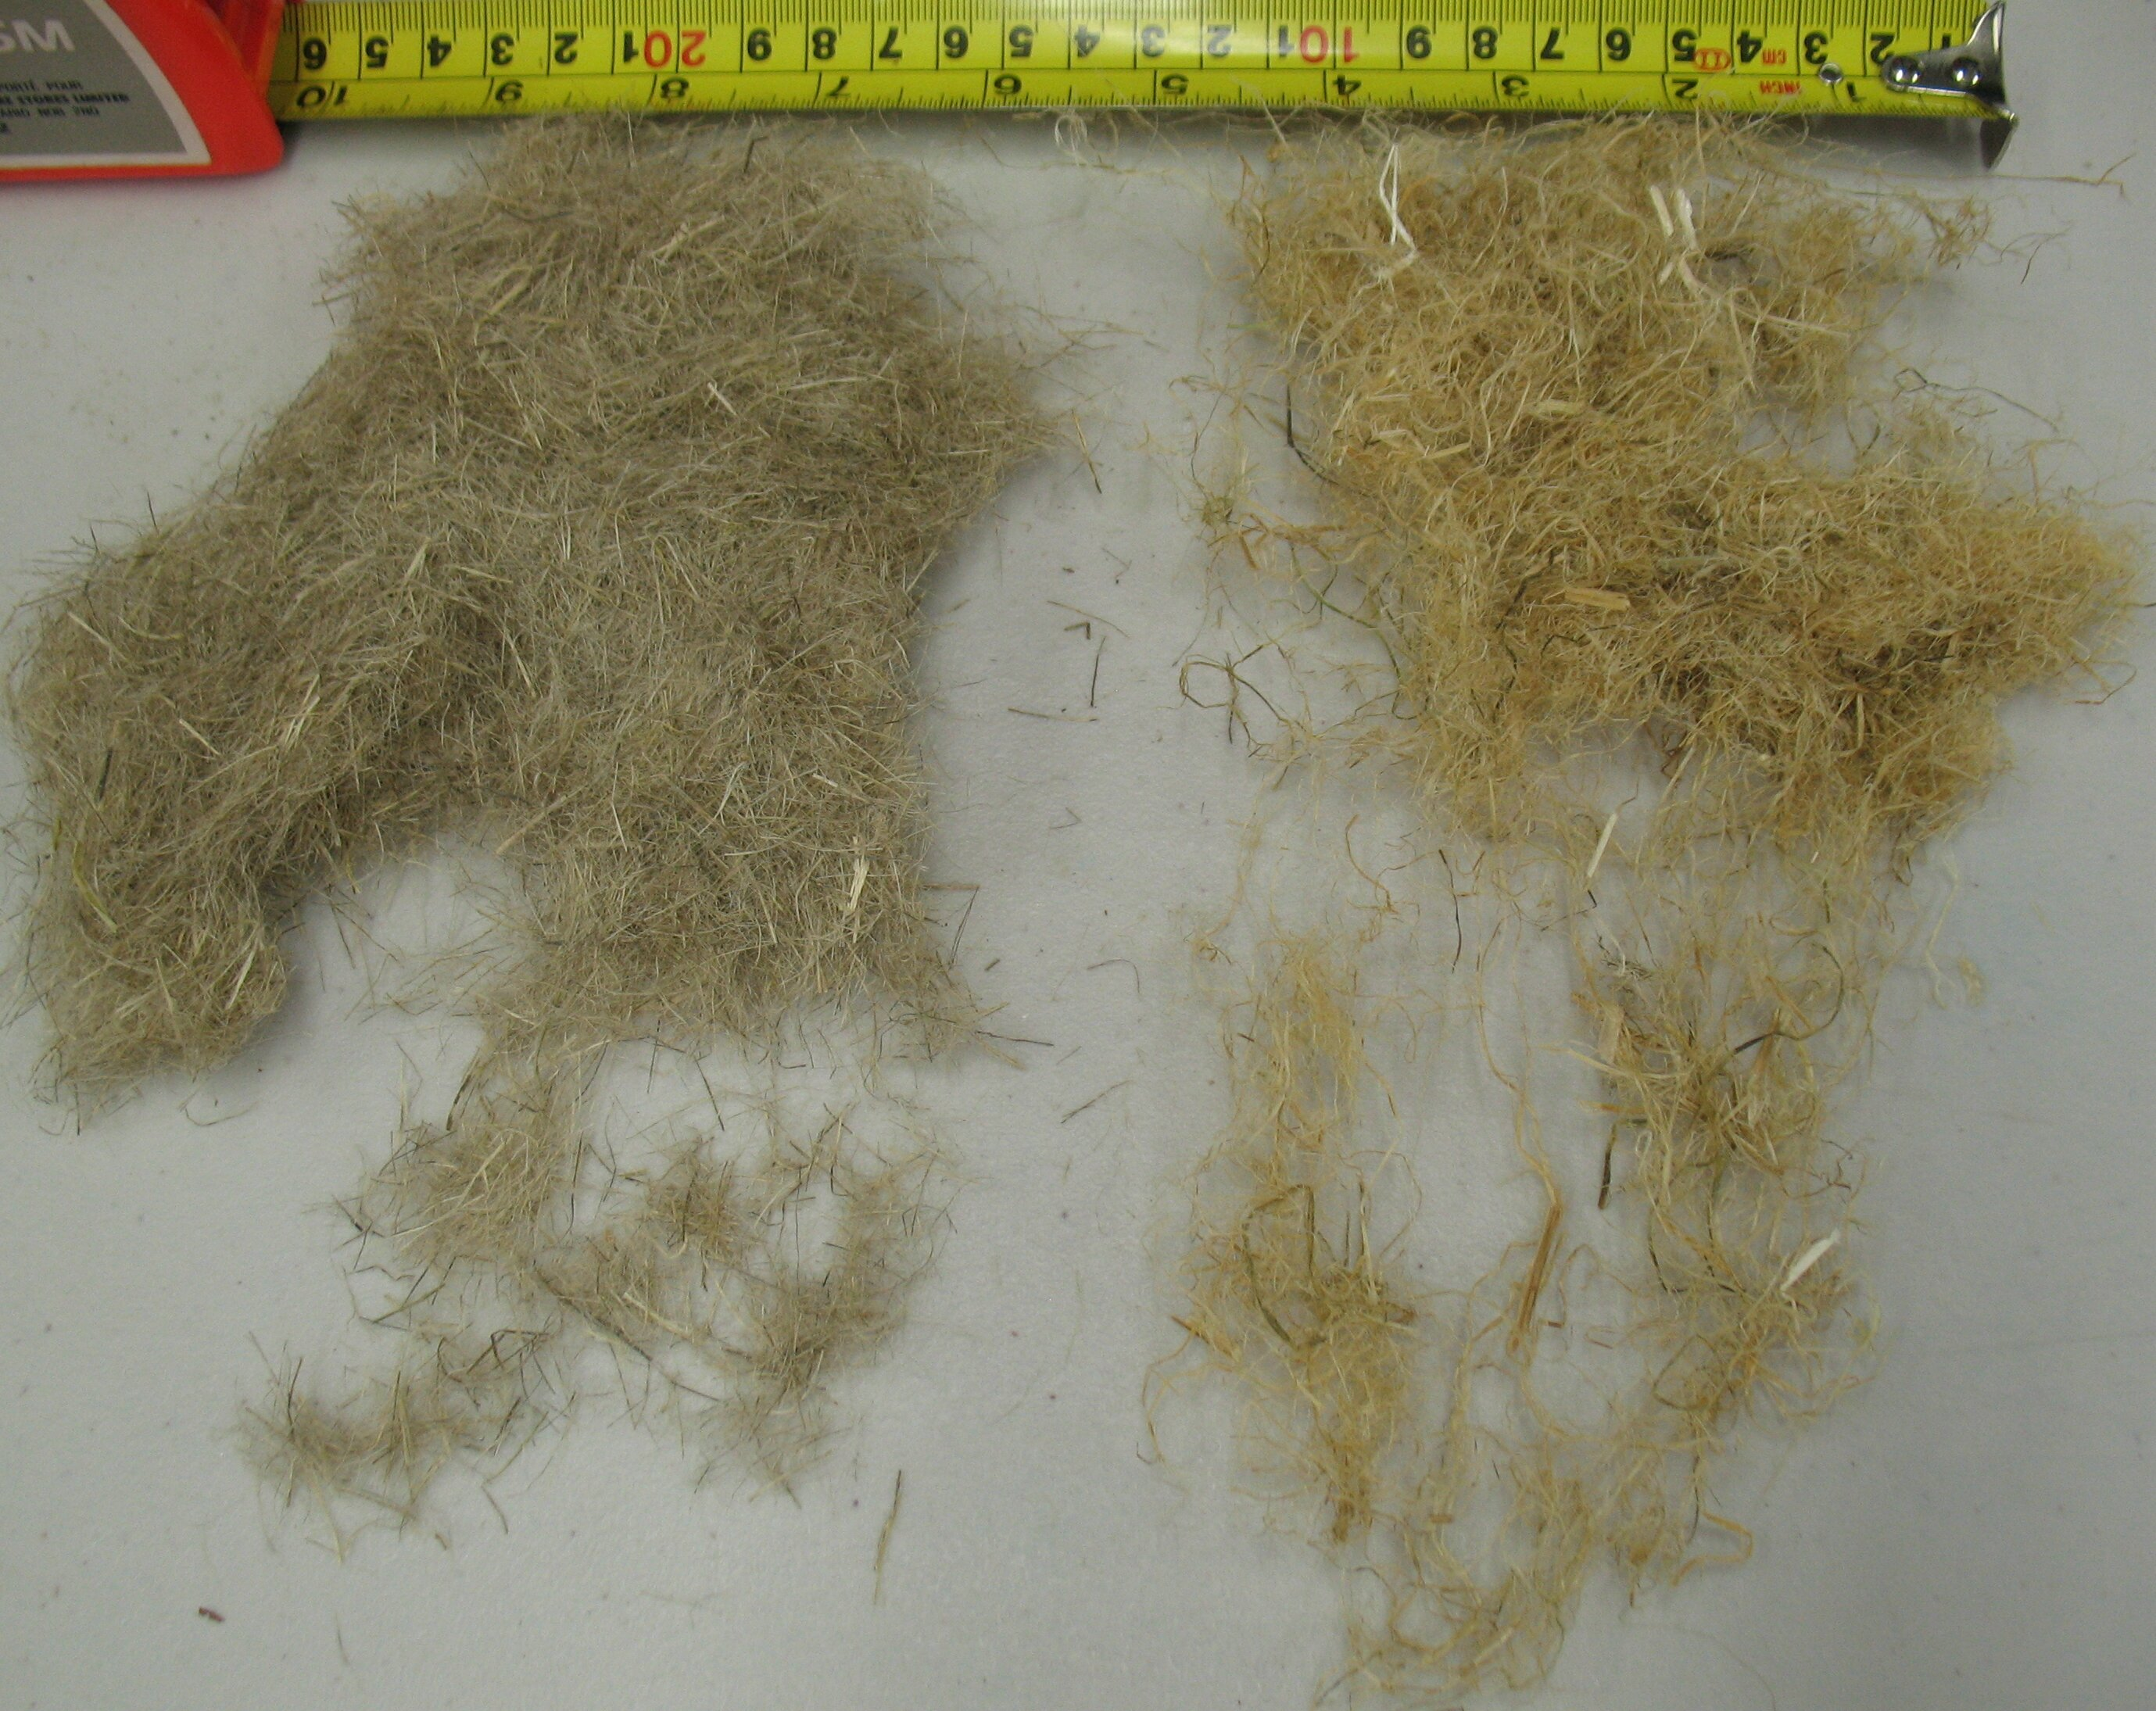 Old dew-retted cut hemp (left) and new water-retted uncot hemp (right)